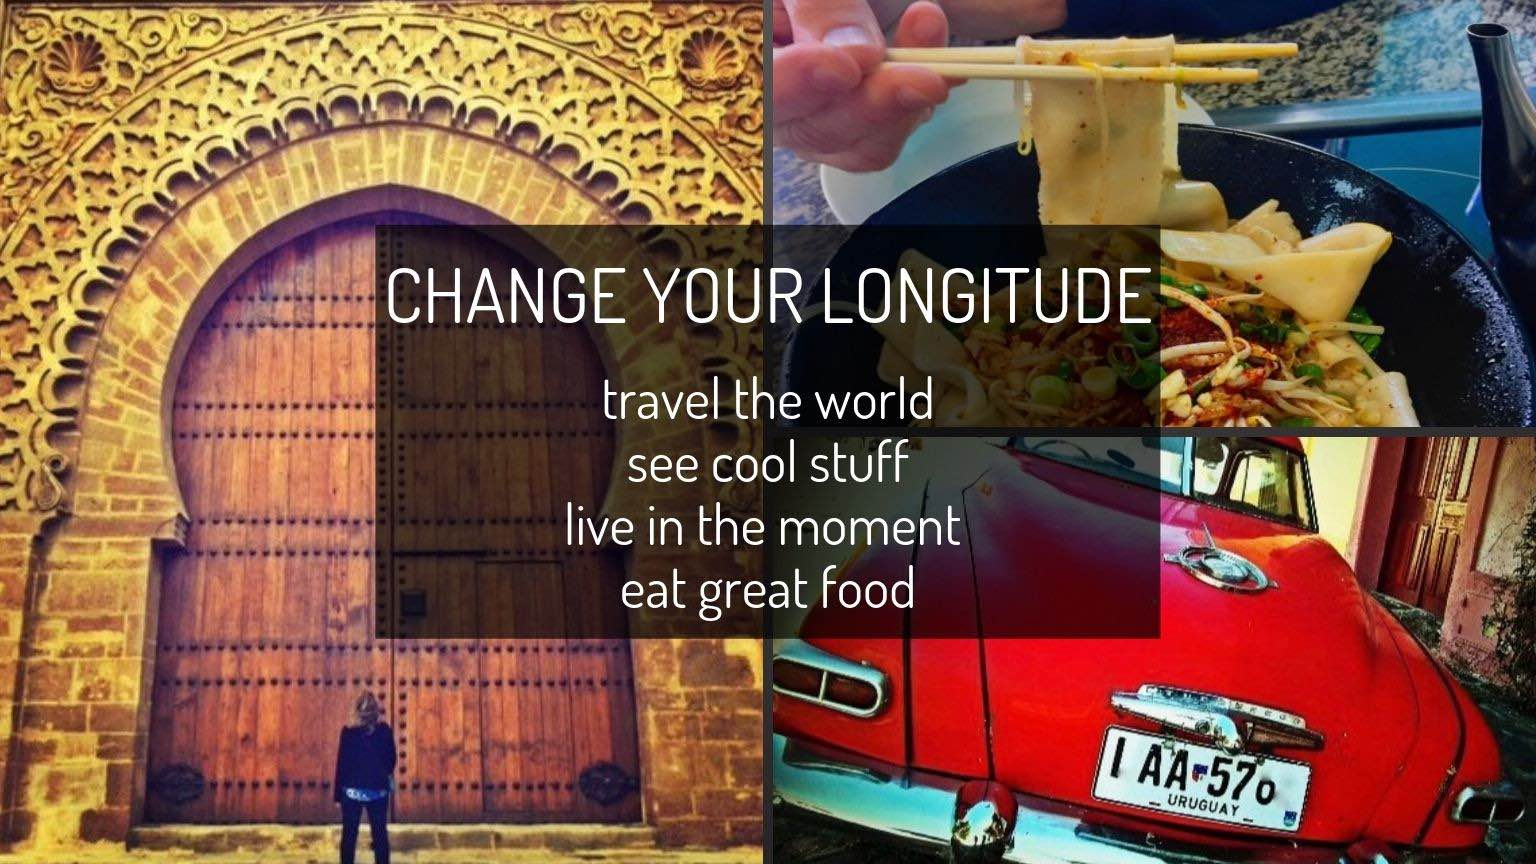 Montage-door in Morocco, Chinese noodles, classic car in Uruguay